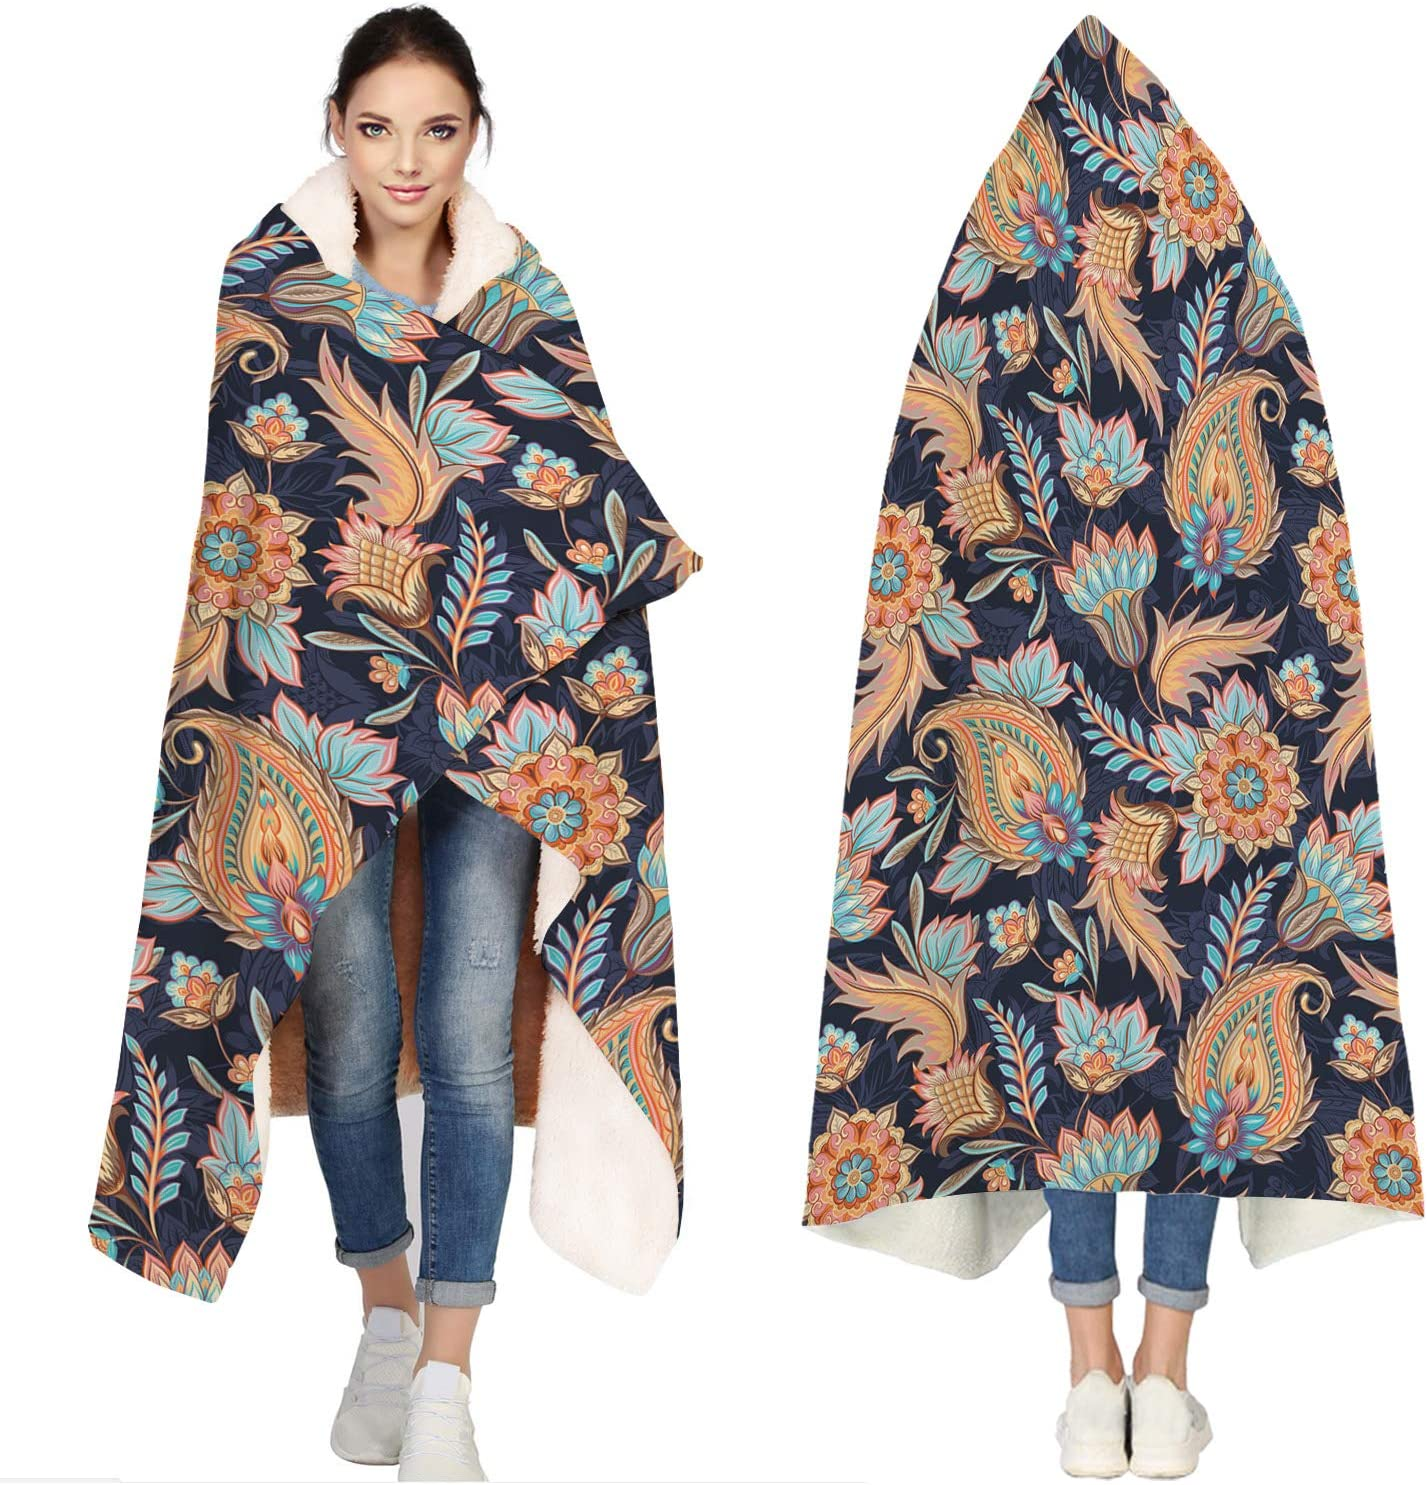 Seven Roses Hooded Blankets for Indian Patte Opening large release sale Max 65% OFF Traditional Adults